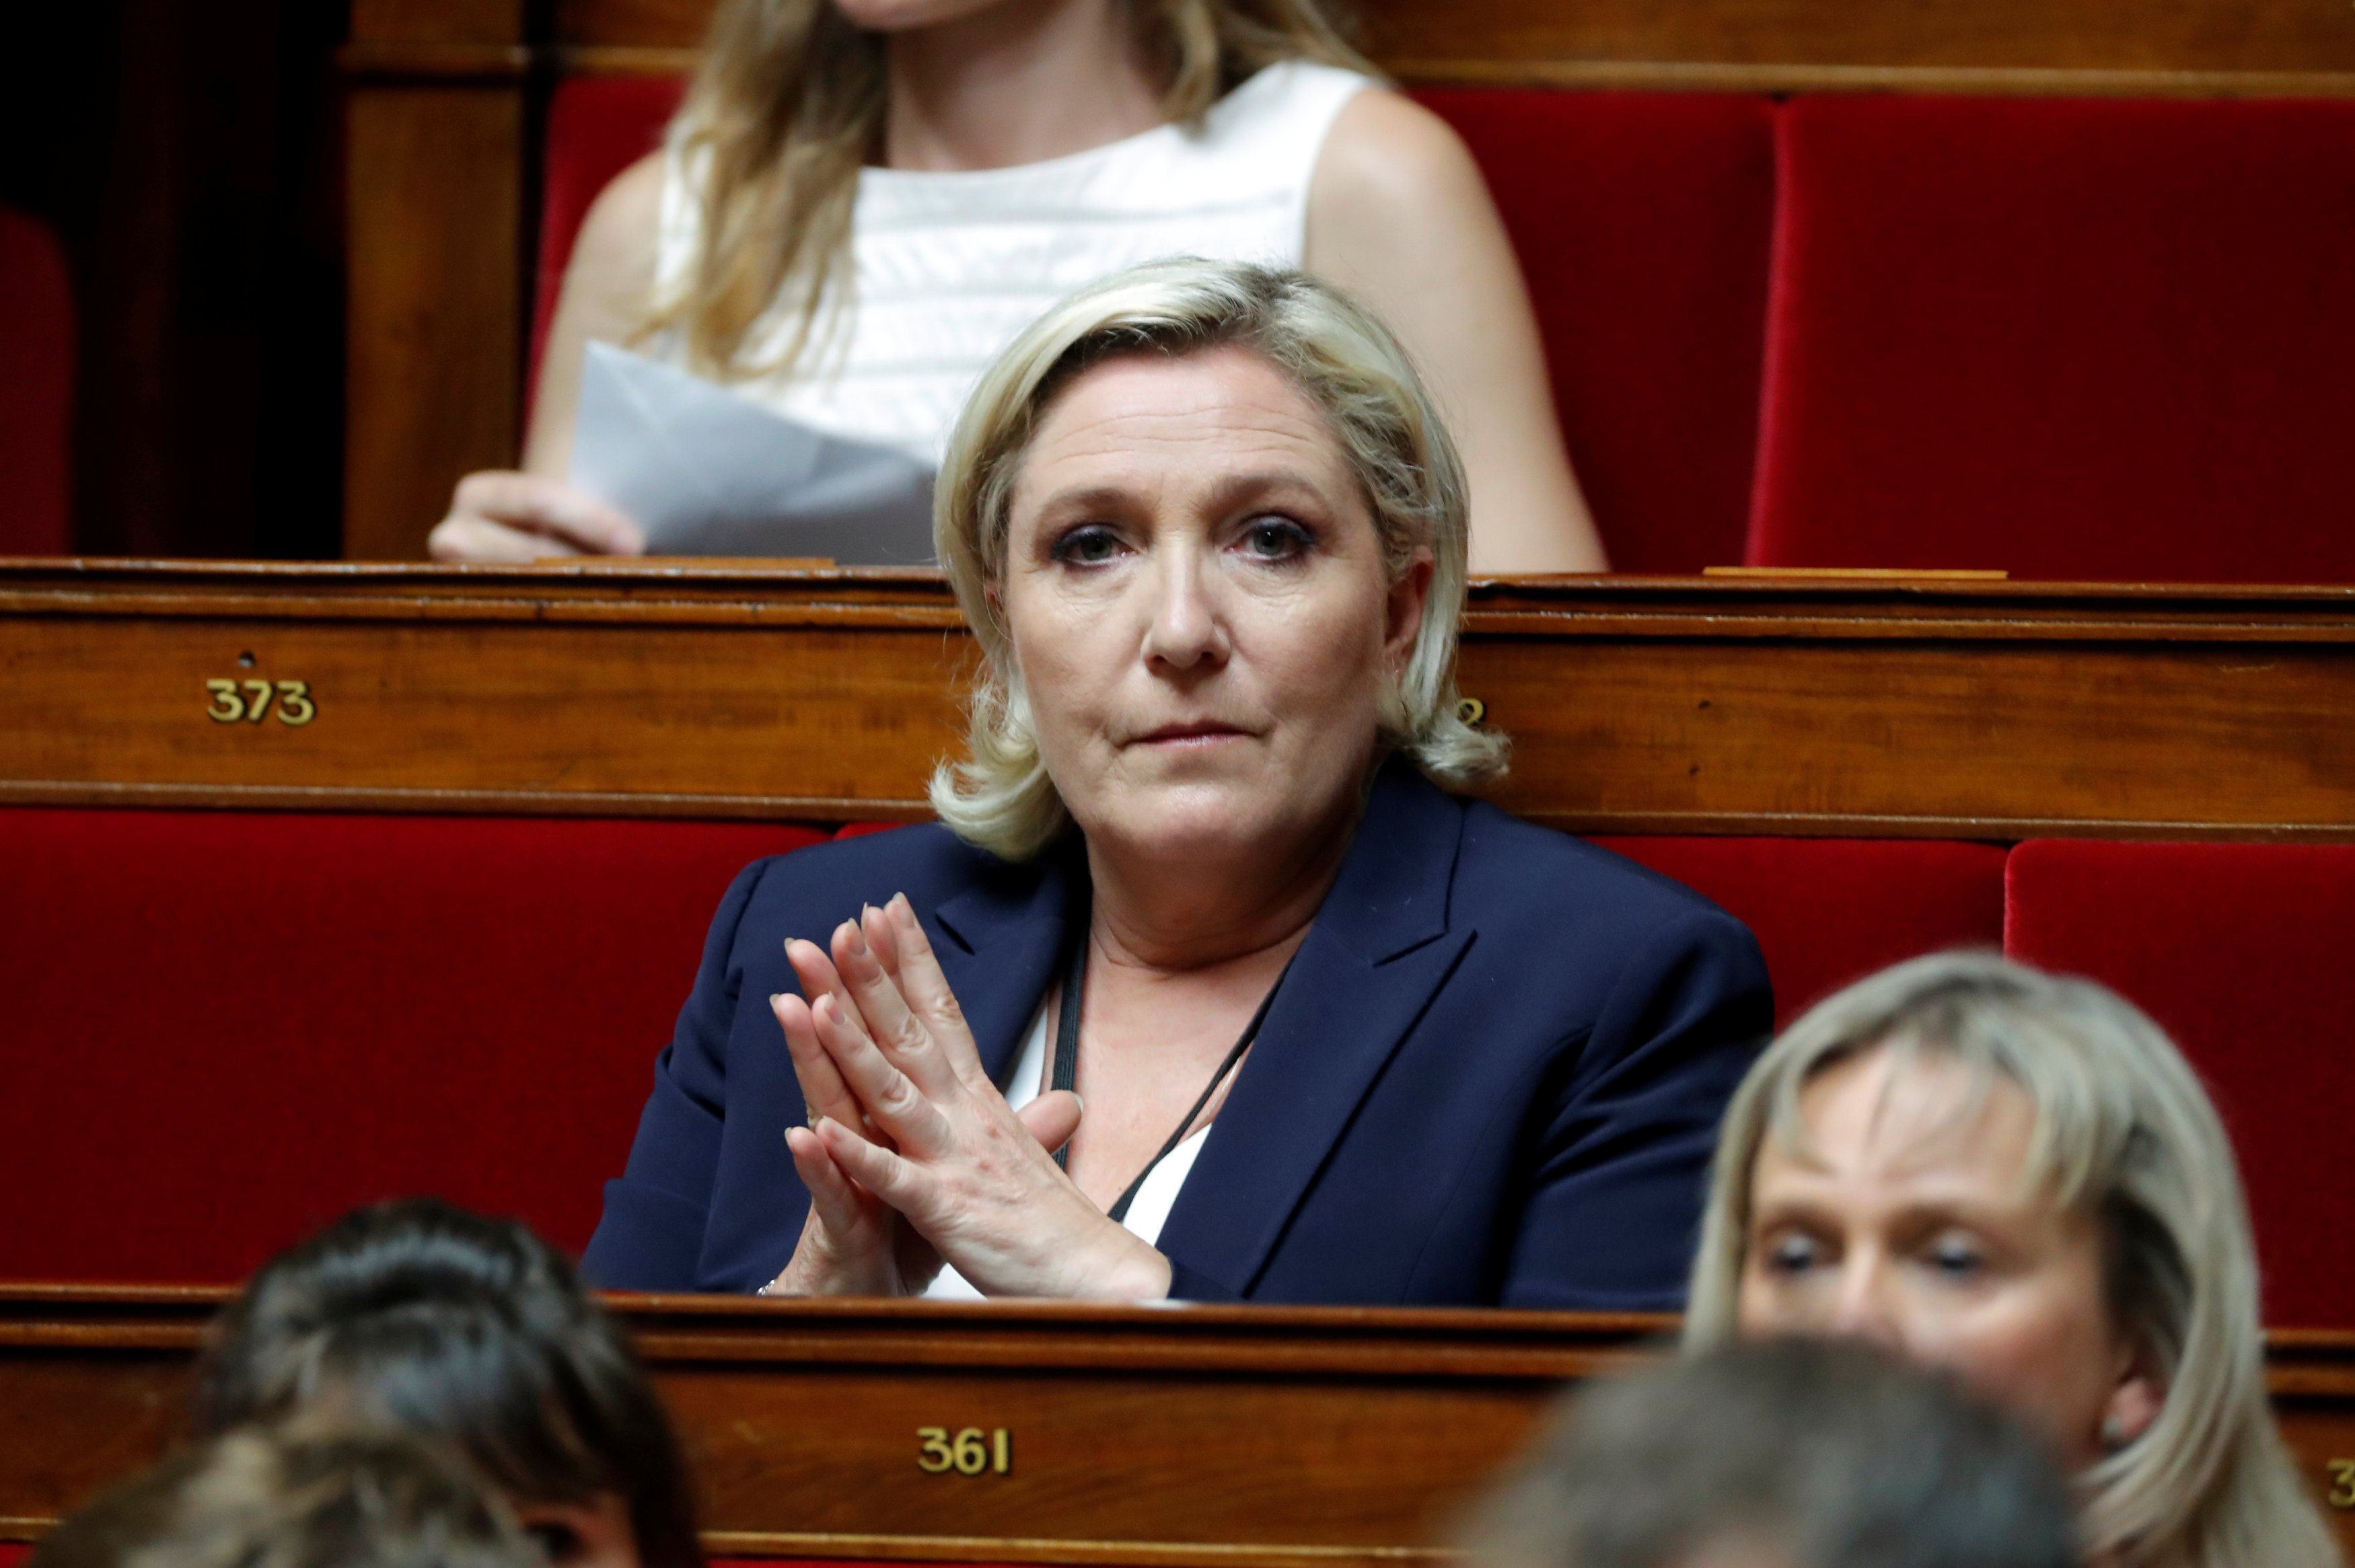 Marine Le Pen of France's far-right National Front (FN) political party at the opening session of the French National Assembly in Paris, France, June 27, 2017